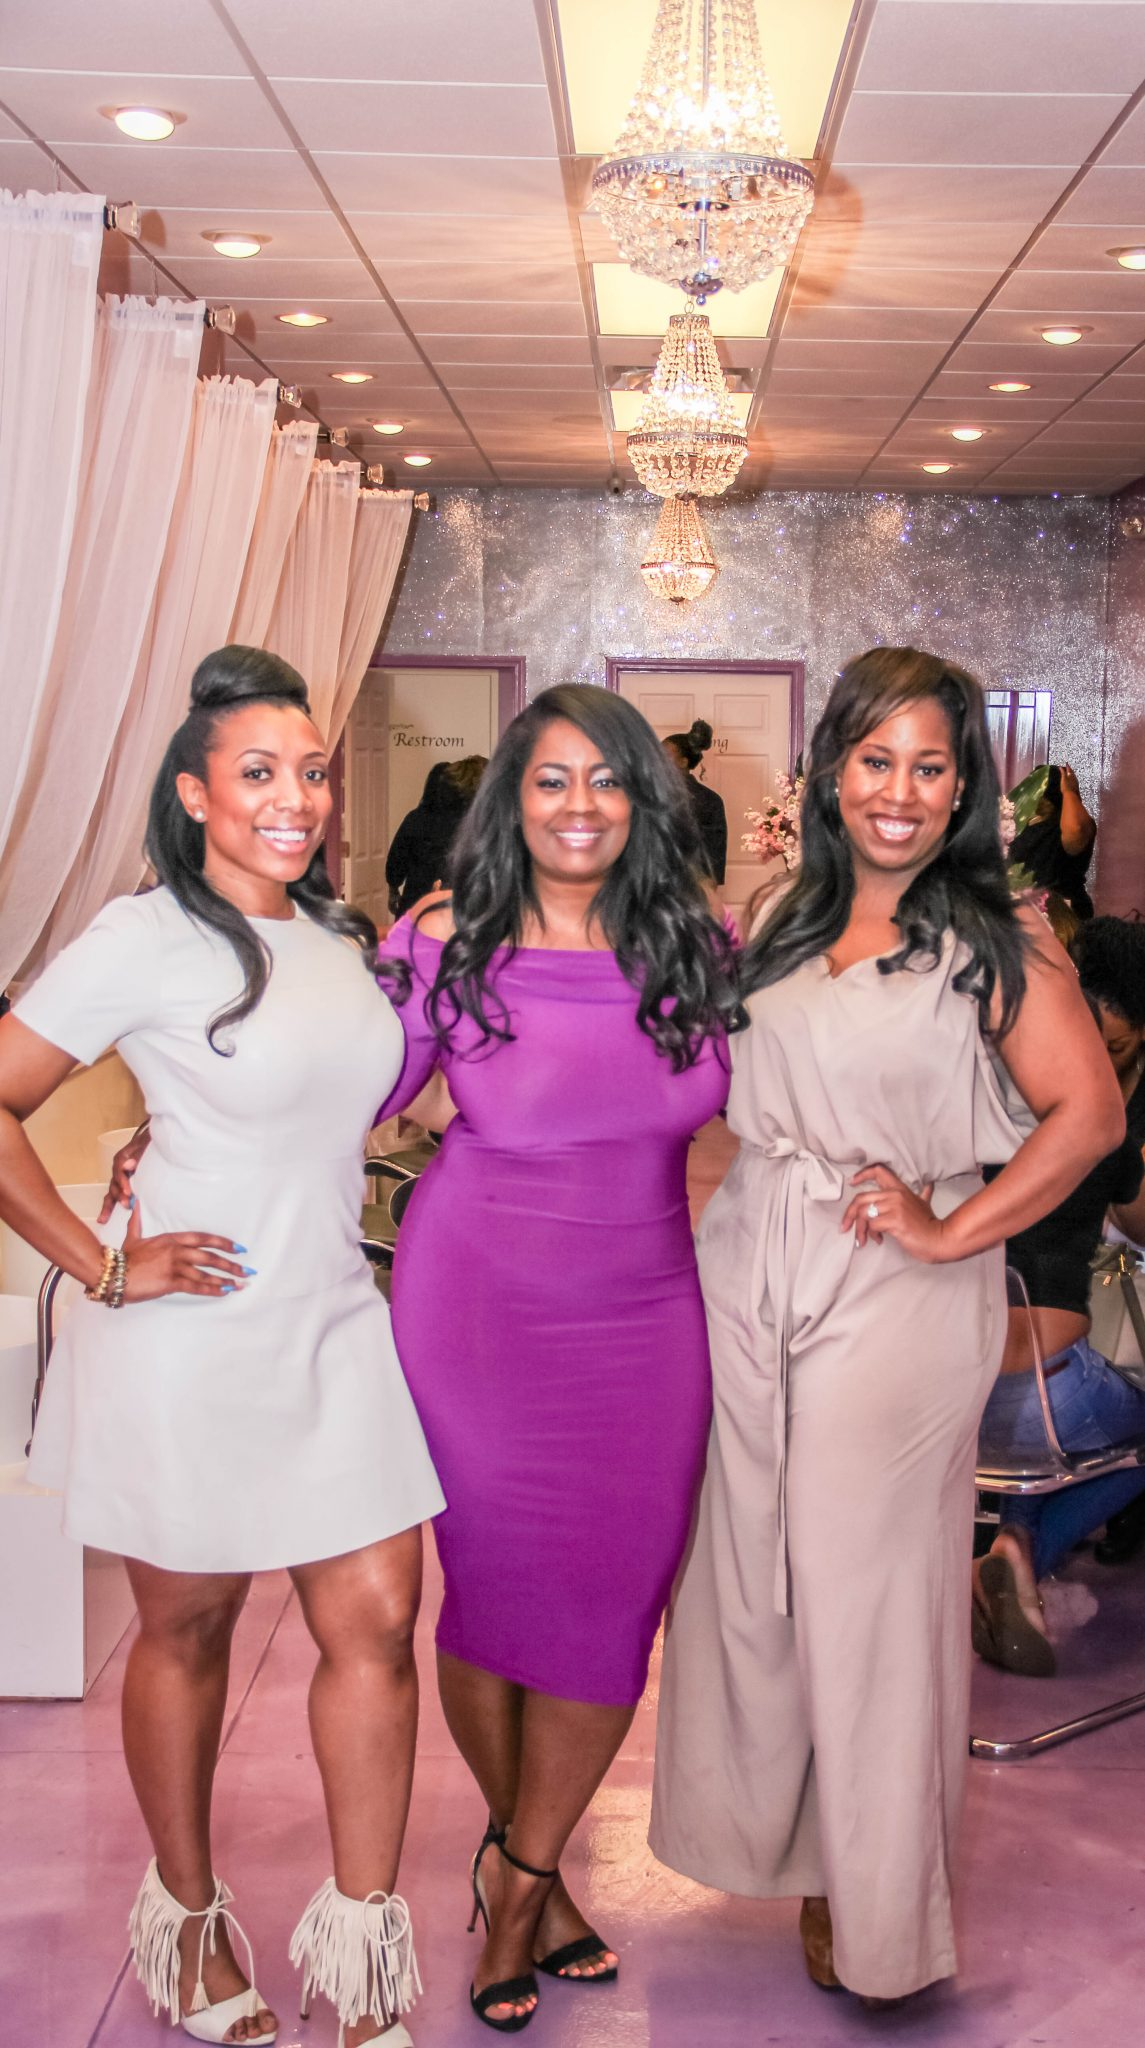 UltraViolet Nail Lounge & Beauty Bar 'It Girl' Glam Event